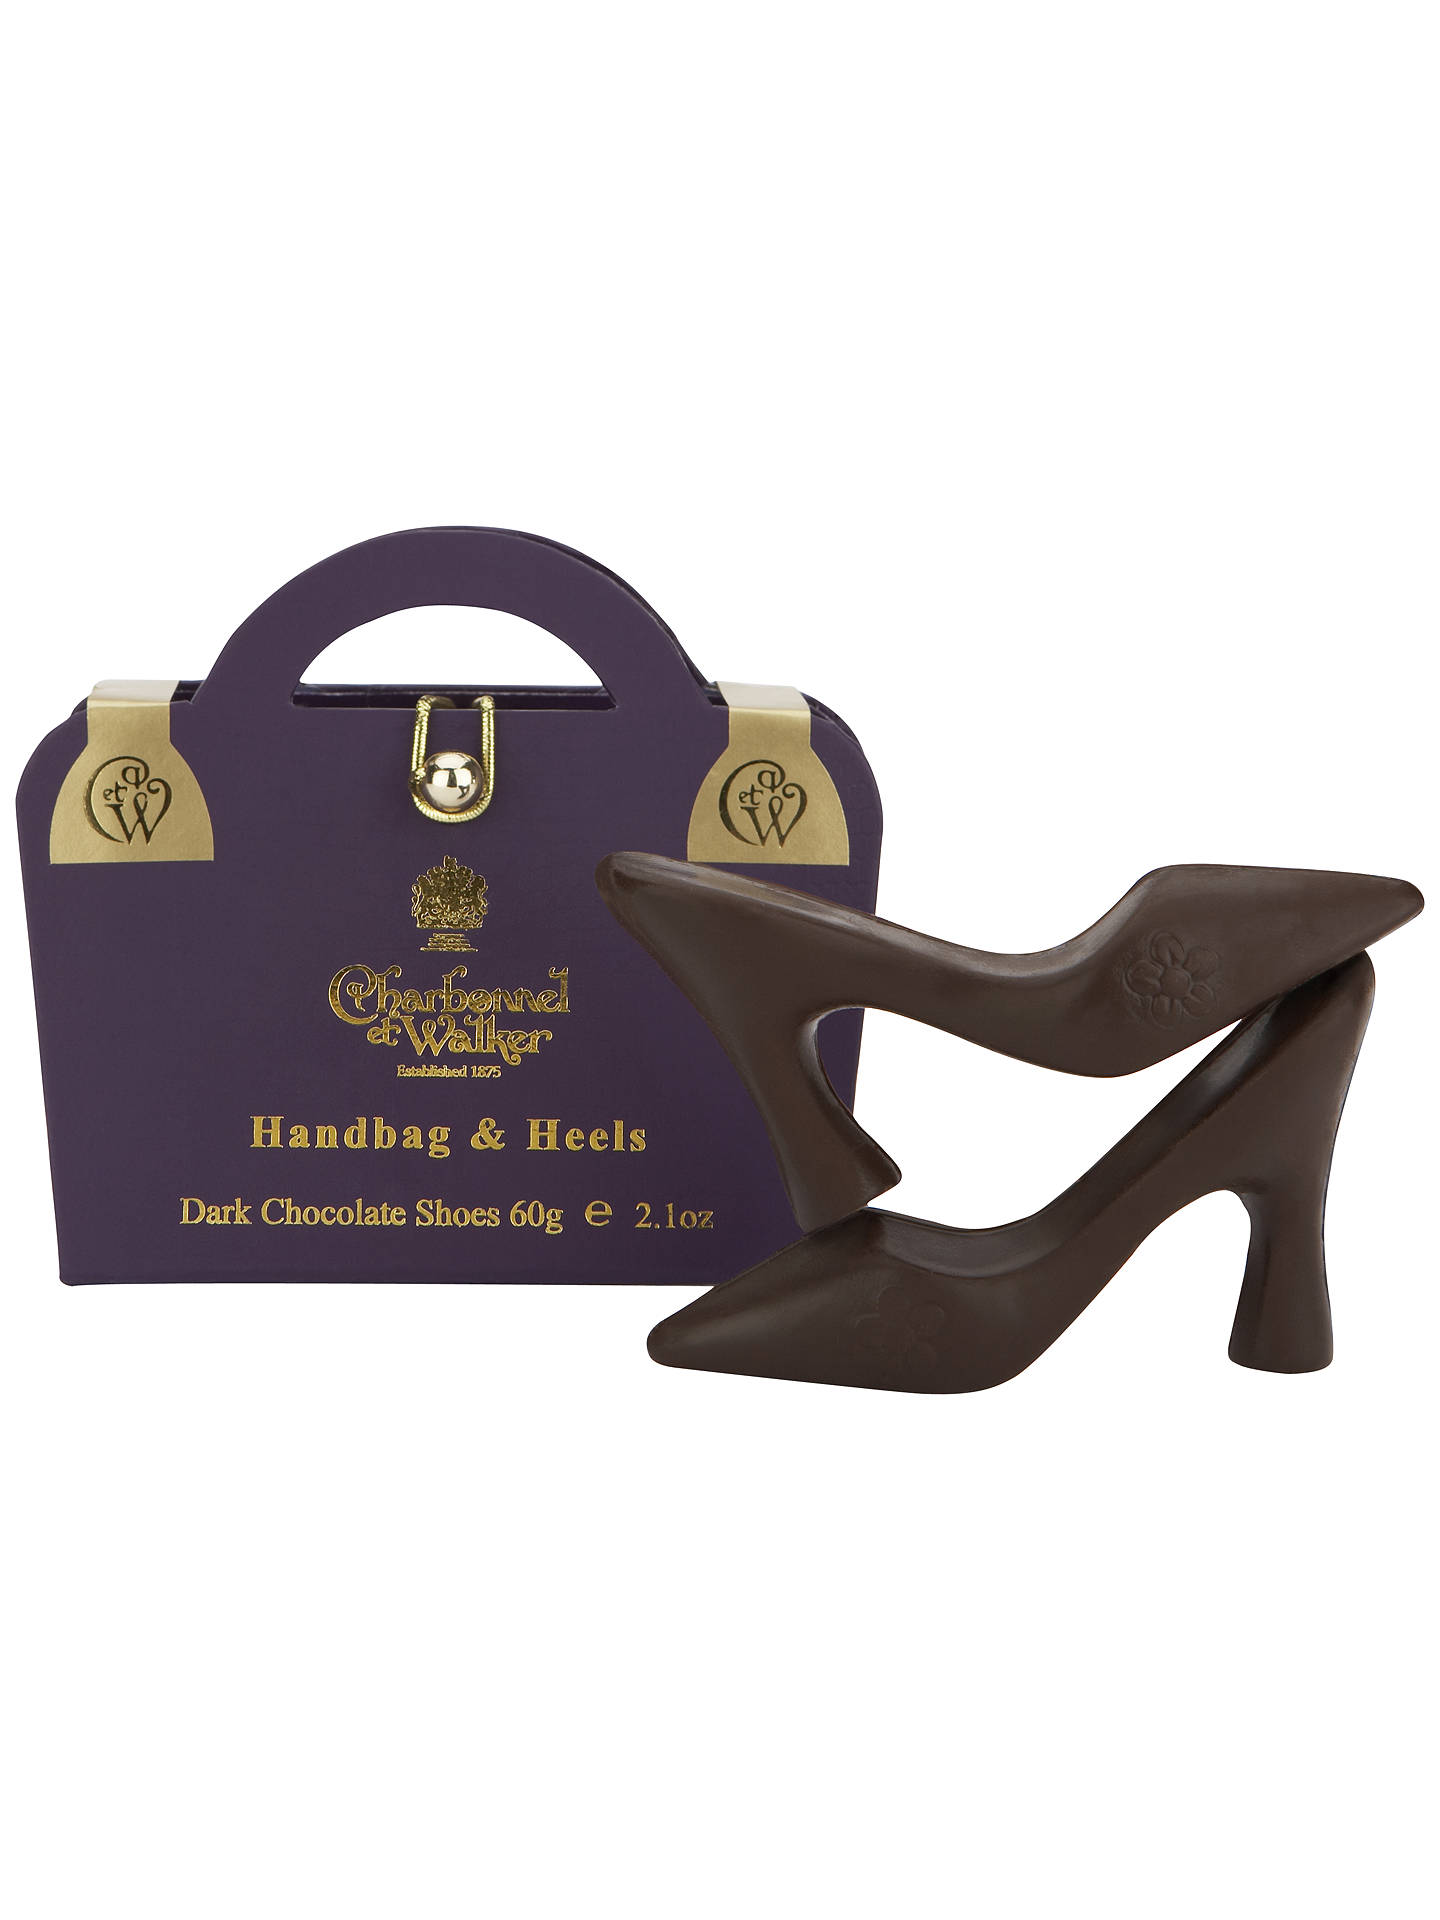 Buy Charbonnel et Walker Handbag and Heels Dark Chocolate, 60g Online at johnlewis.com